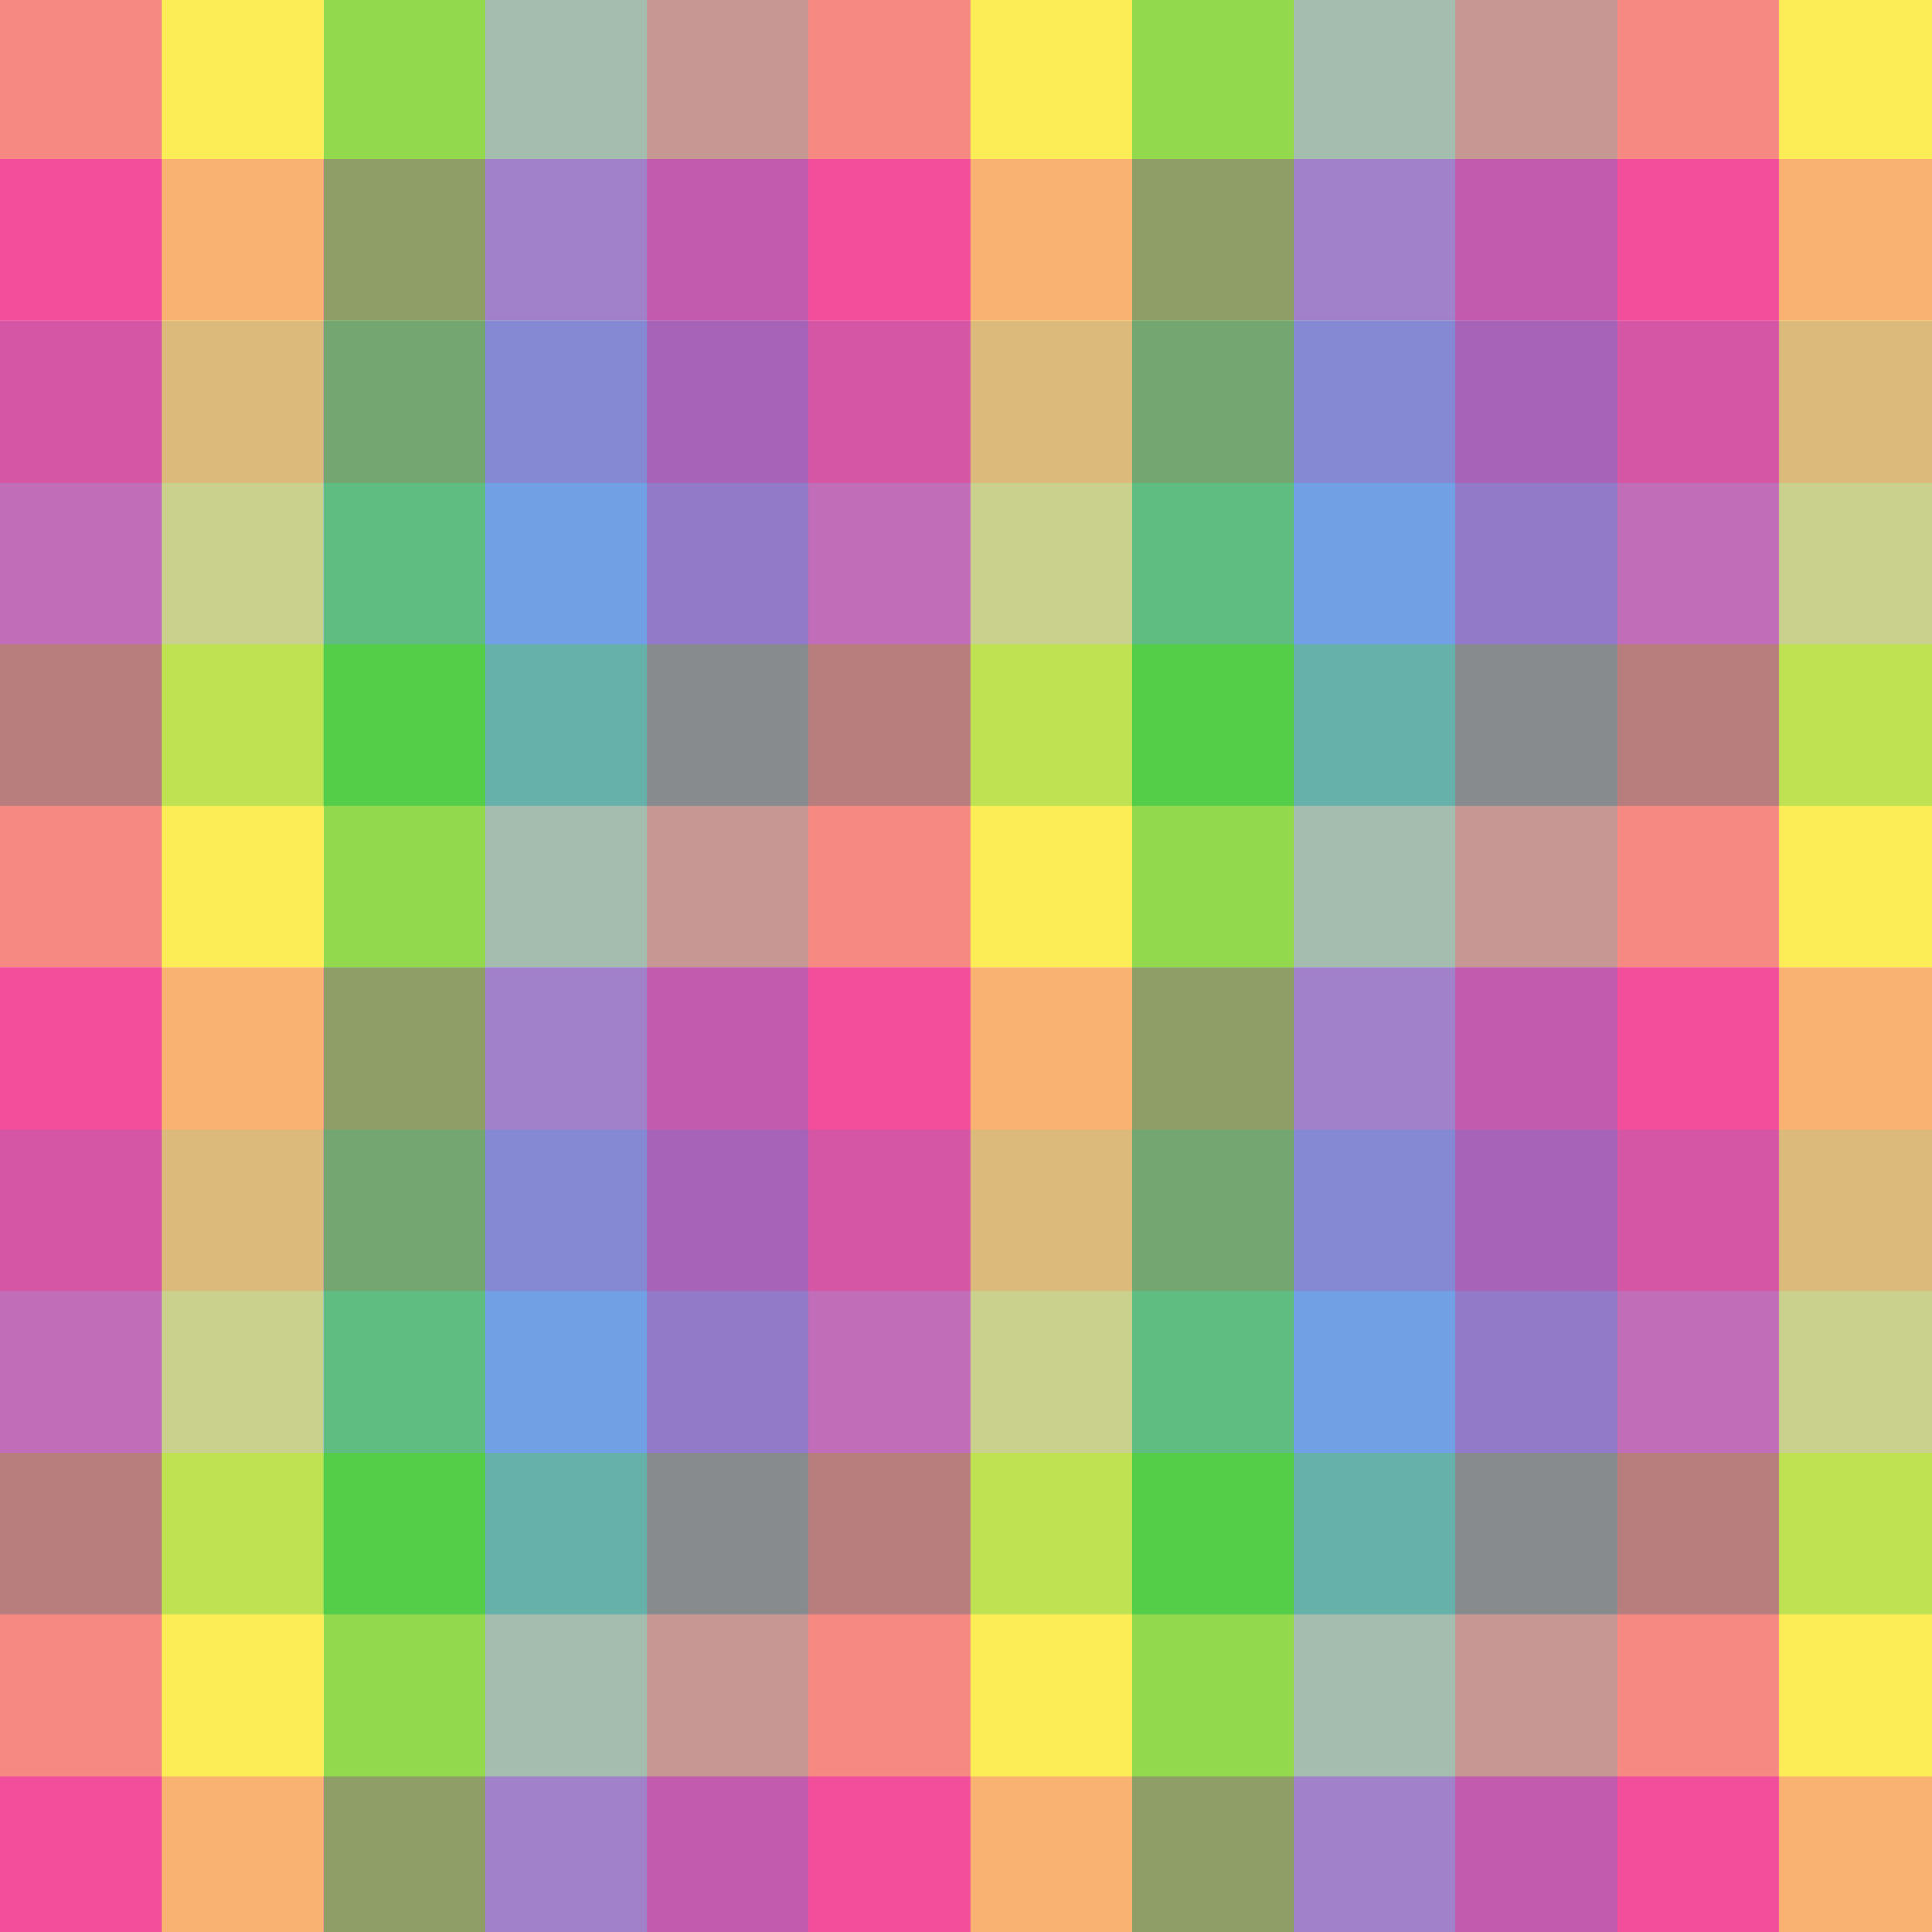 Cute colorful checkered pattern free clip art cute colorful checkered pattern voltagebd Gallery